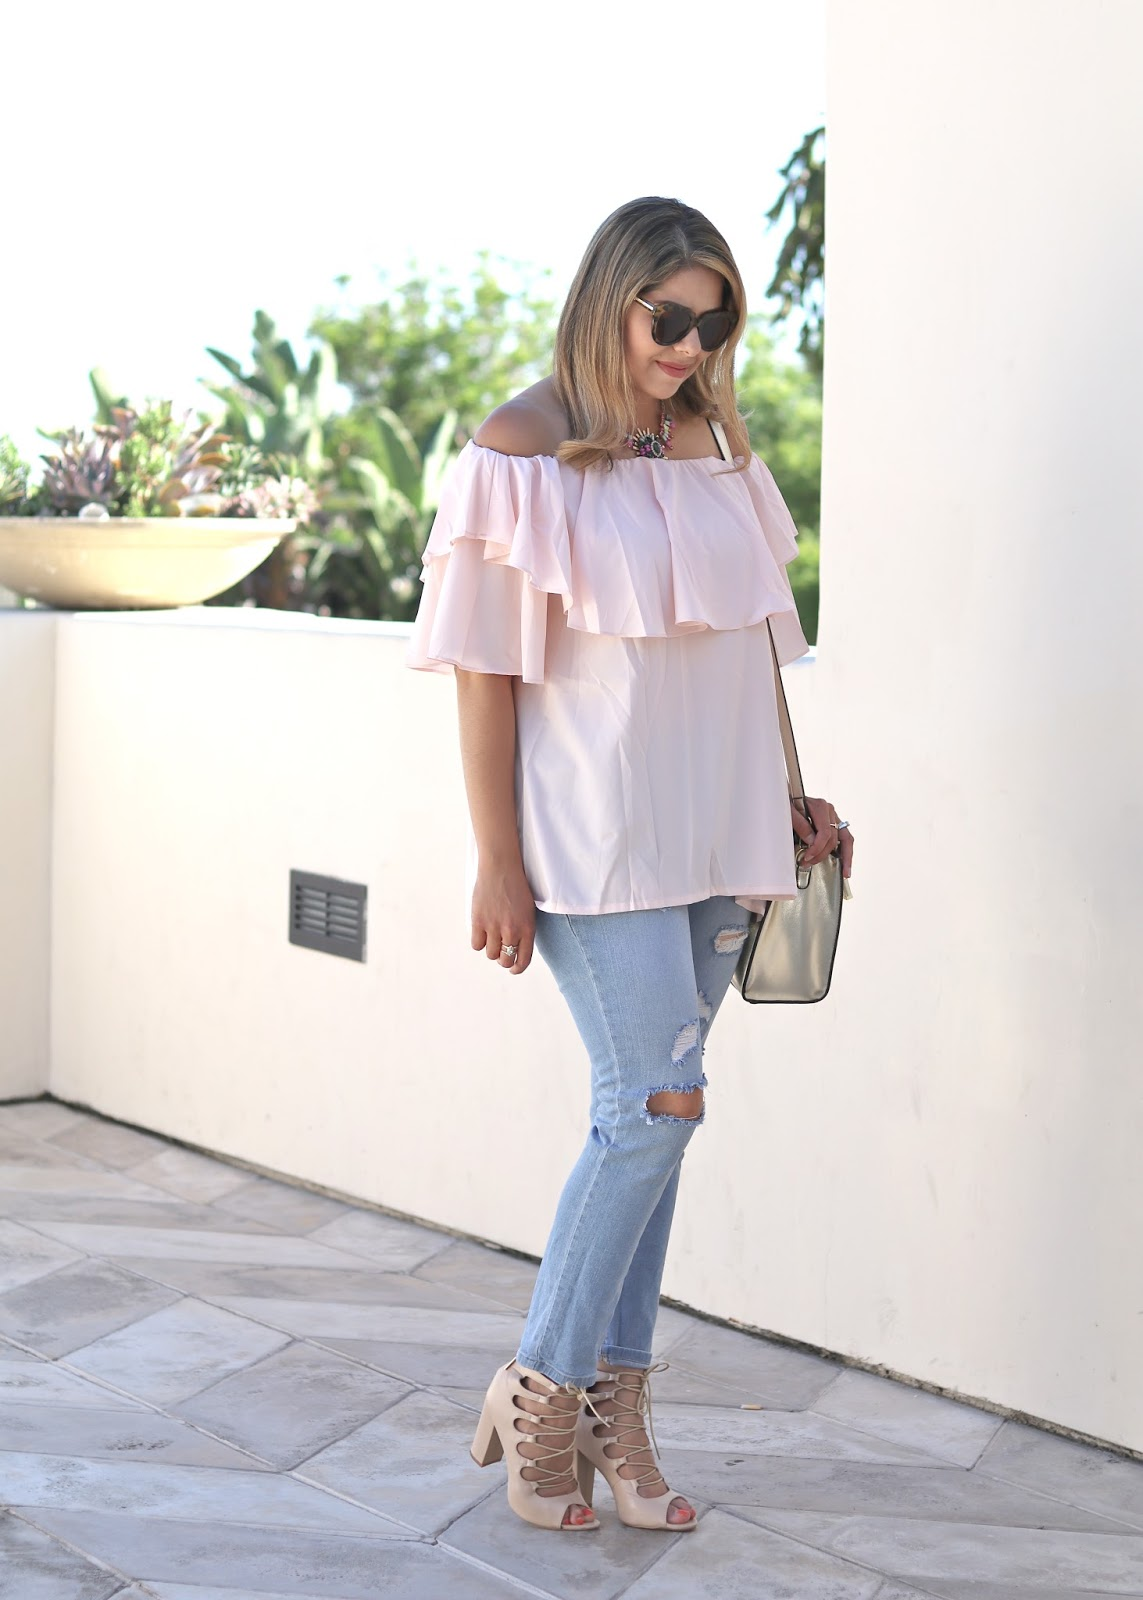 chicwish blush top, cute blush top, distressed skinny jeans, charlotte russe jeans, cute outfit for summer, pastel casual outfit, off the shoulder outfit